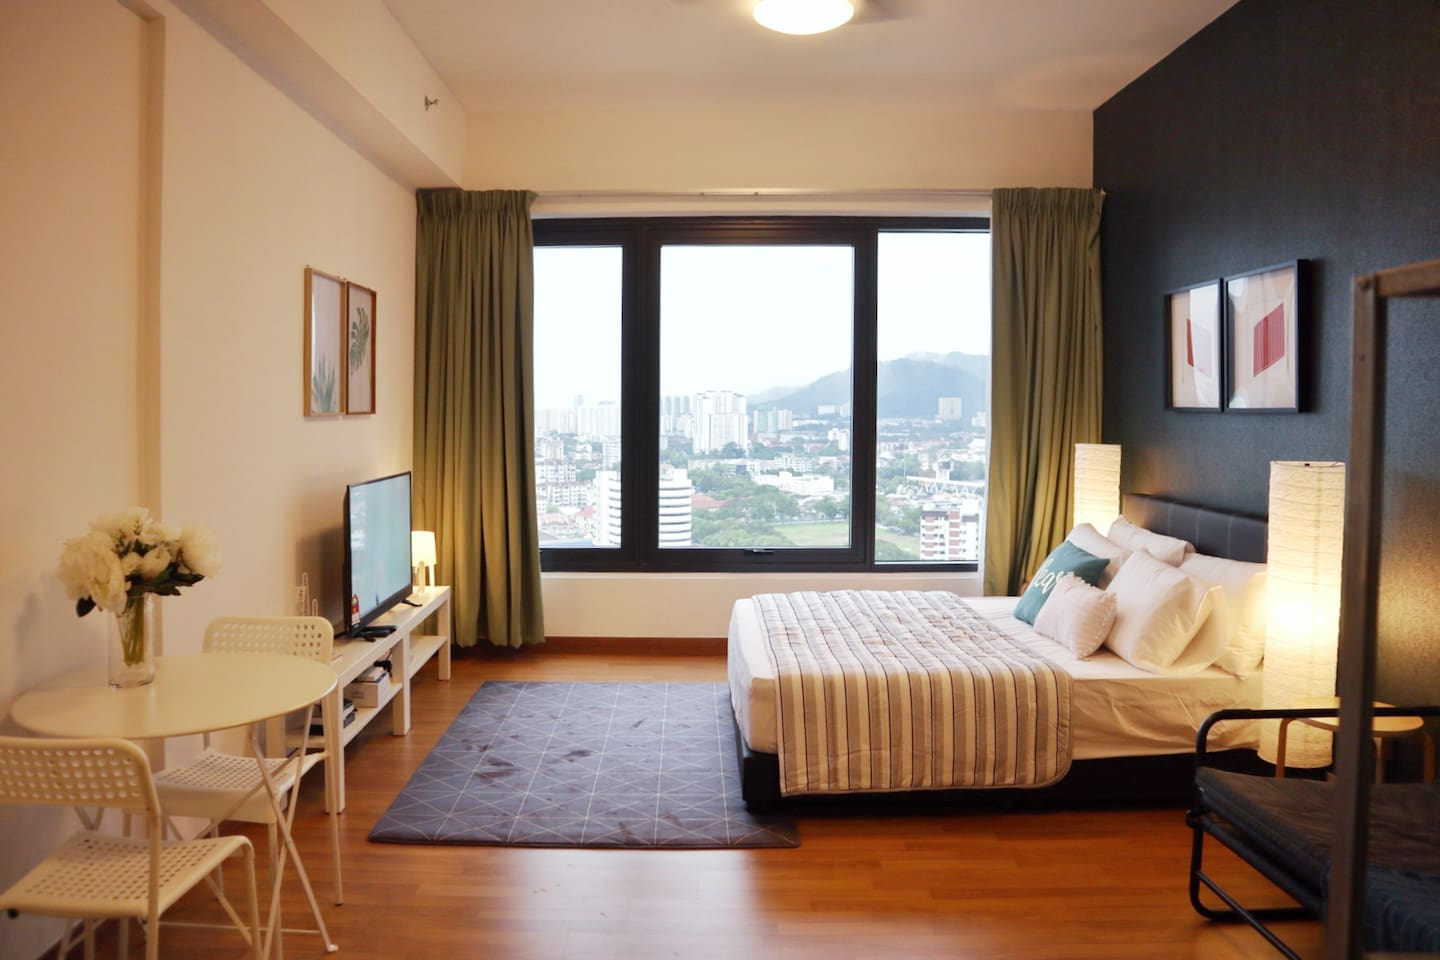 Welcome to Grace, a compact, petite yet complete studio apartment just 5 minutes to the heart of George Town.